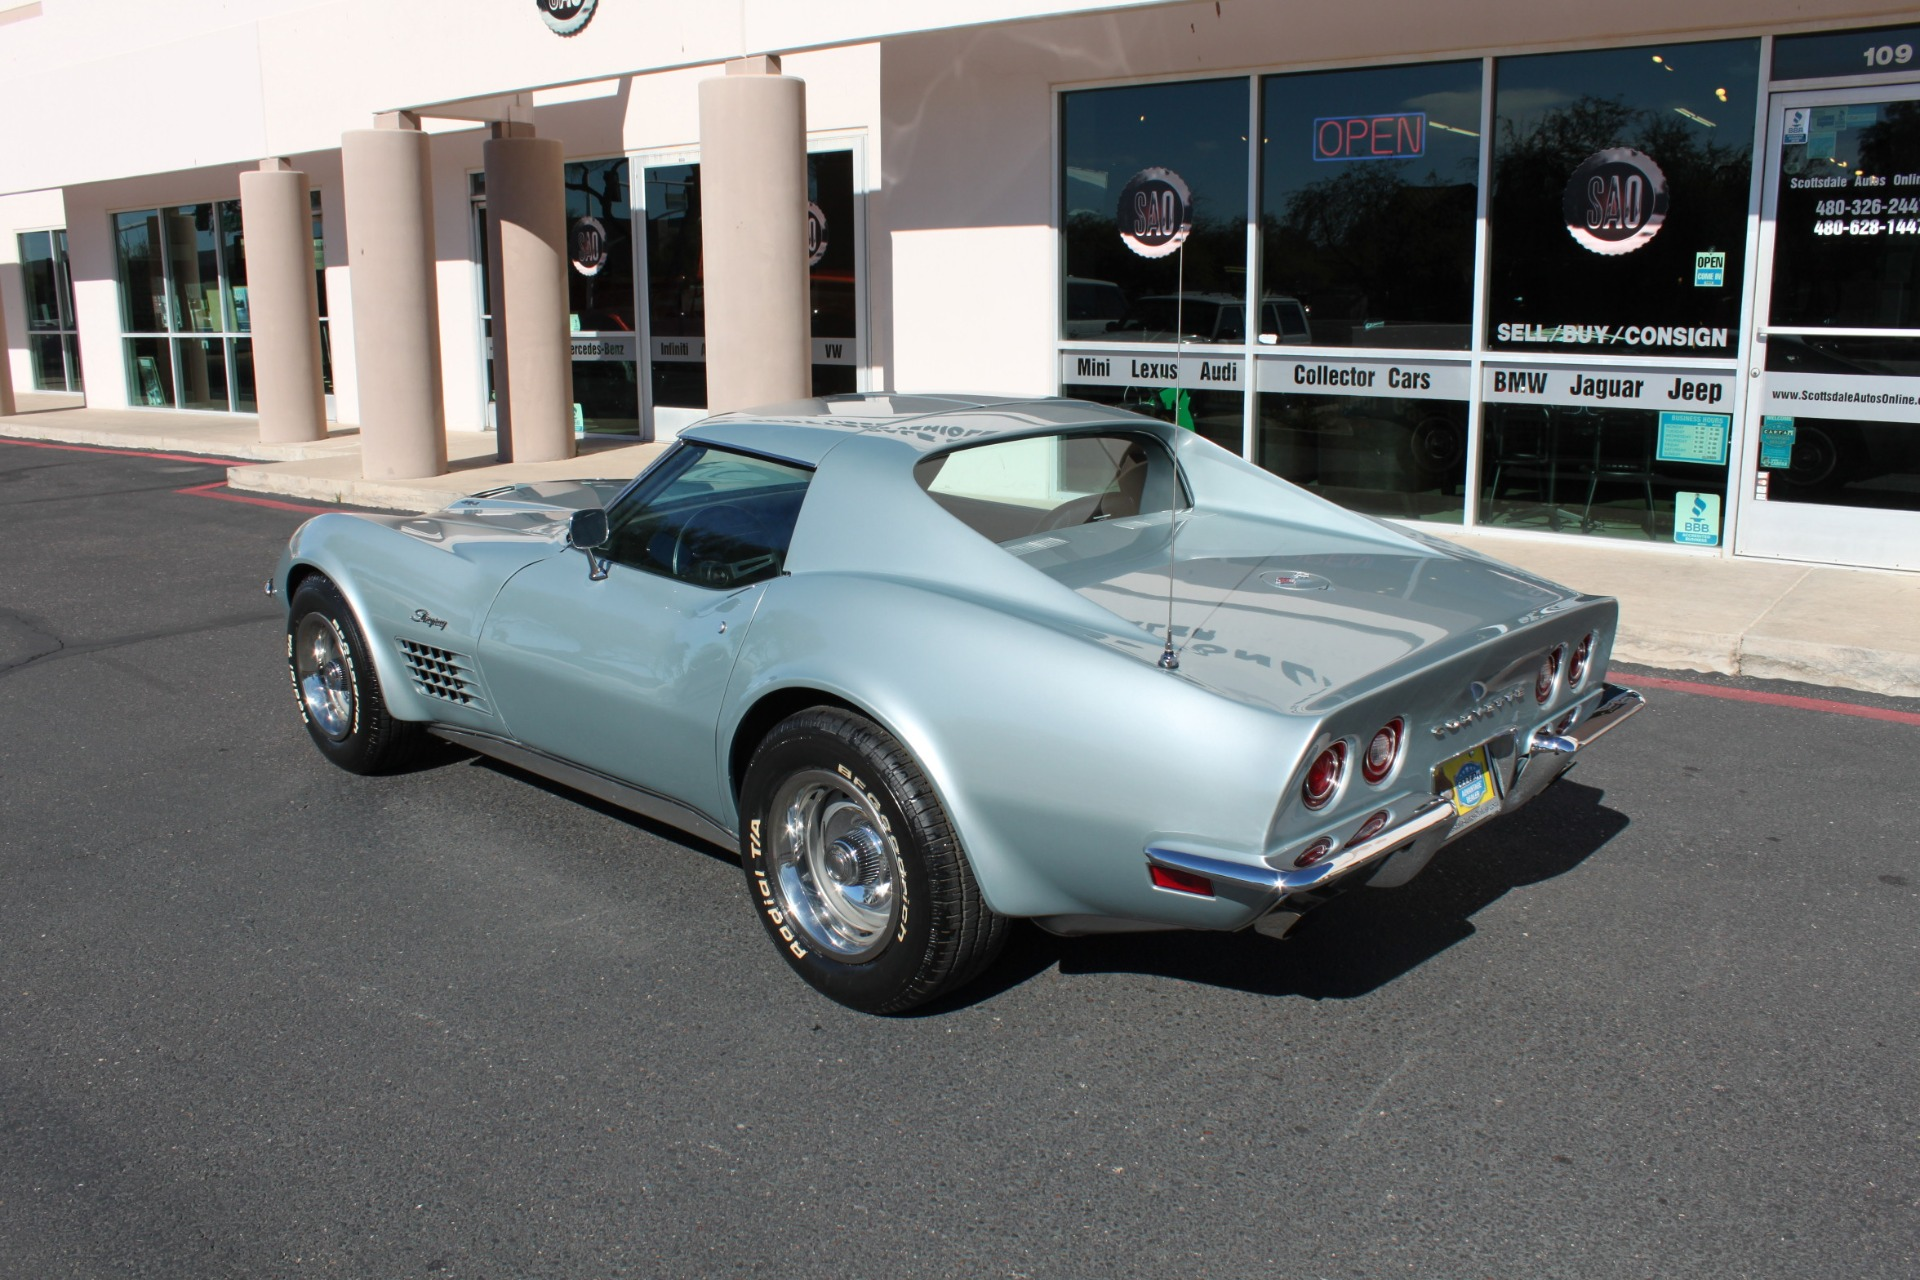 Used-1971-Chevrolet-Corvette-454-LS5-Big-Block-Ferrari